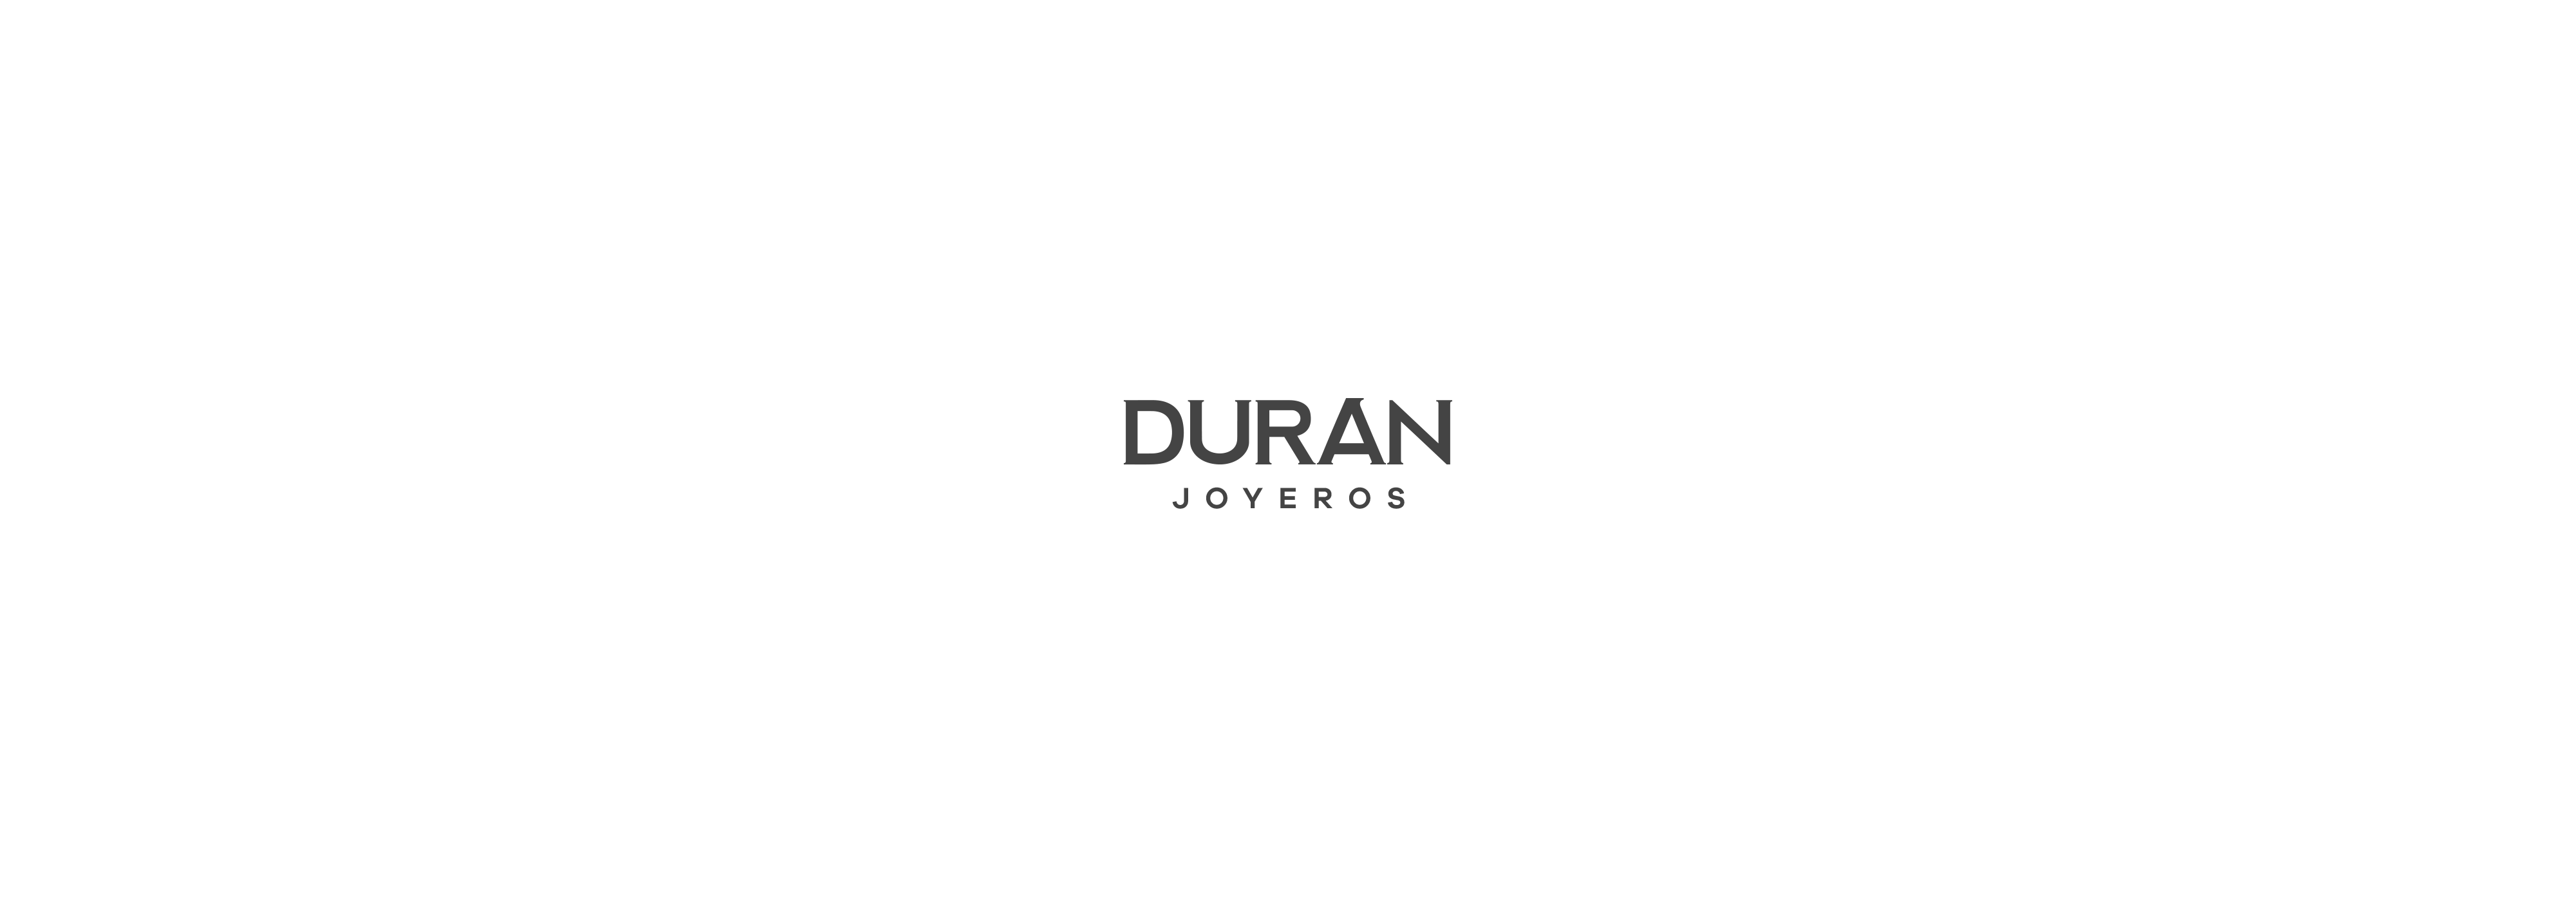 Durán Joyeros Rebranding by Branding by The Woork Co